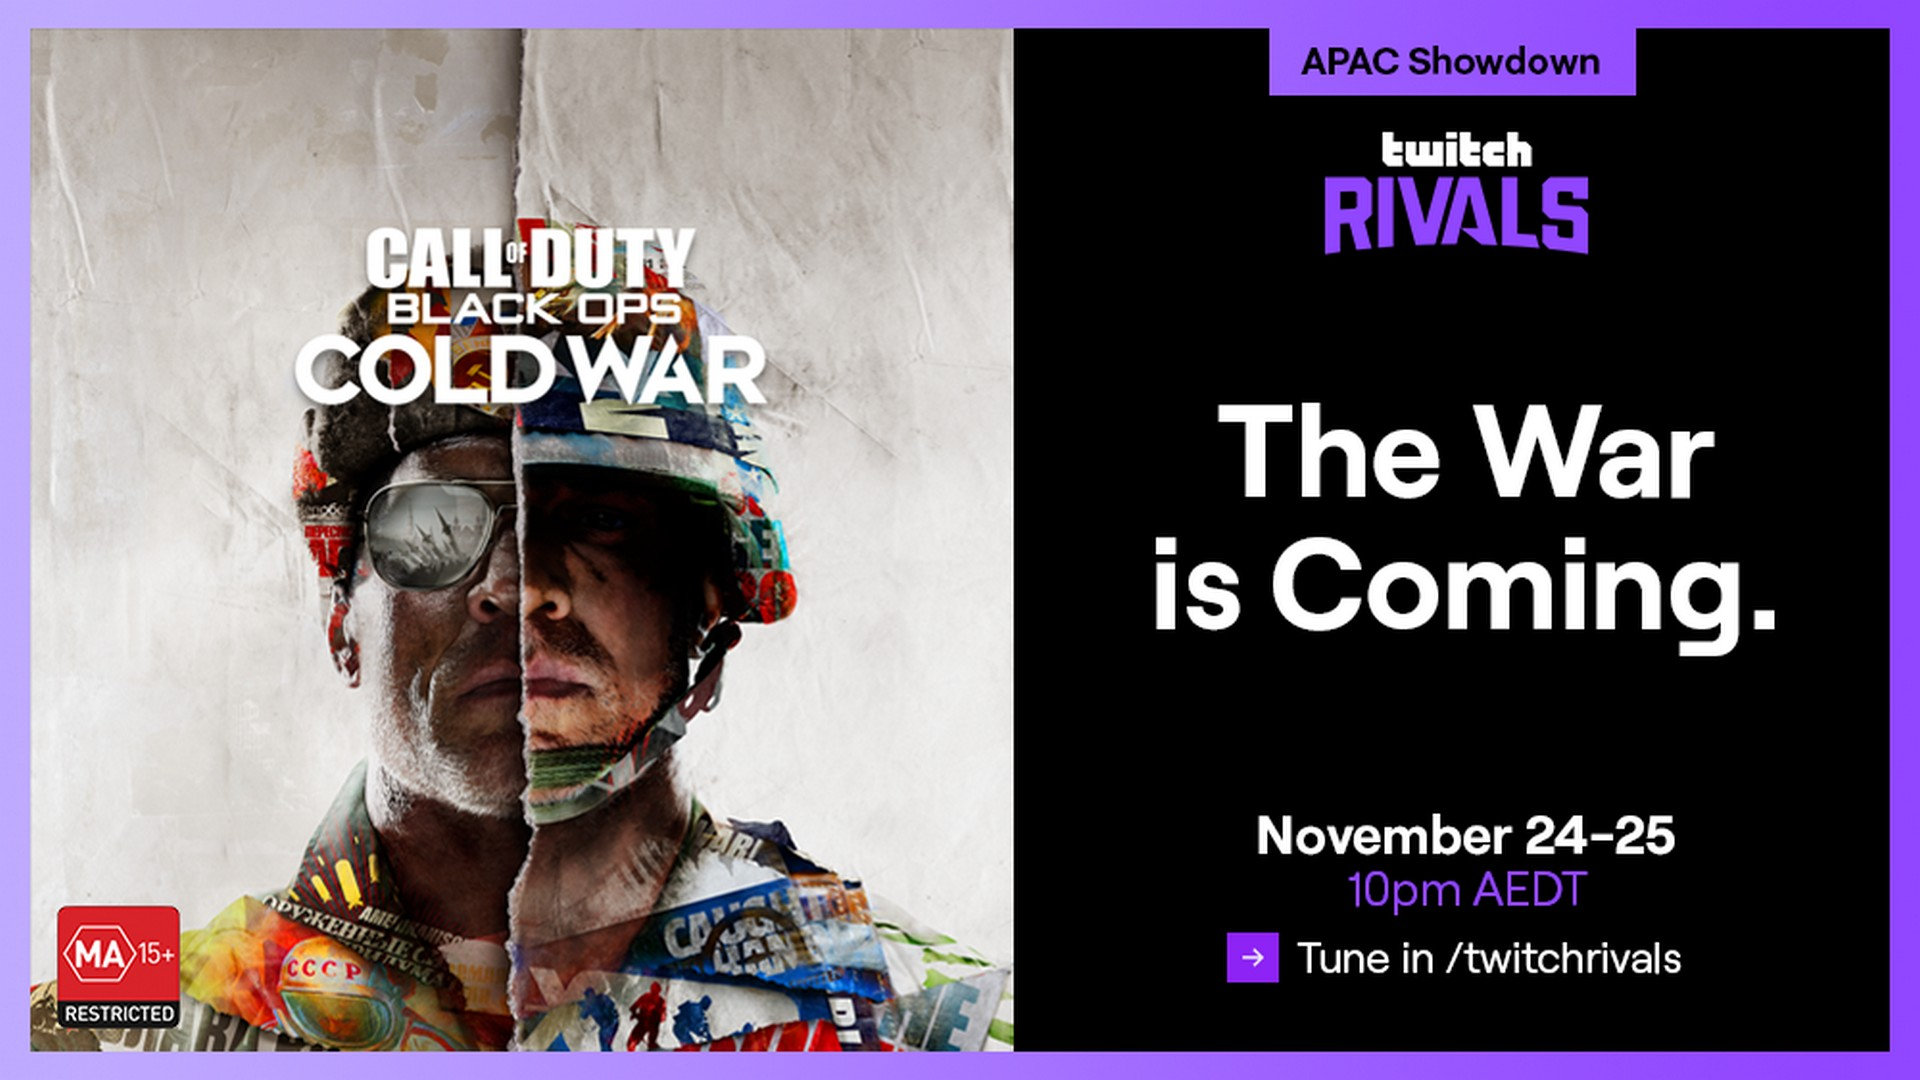 ANZ Streamers To Represent In The Latest Twitch Rivals: APAC Showdown, Feat. Call of Duty Black Ops Cold War